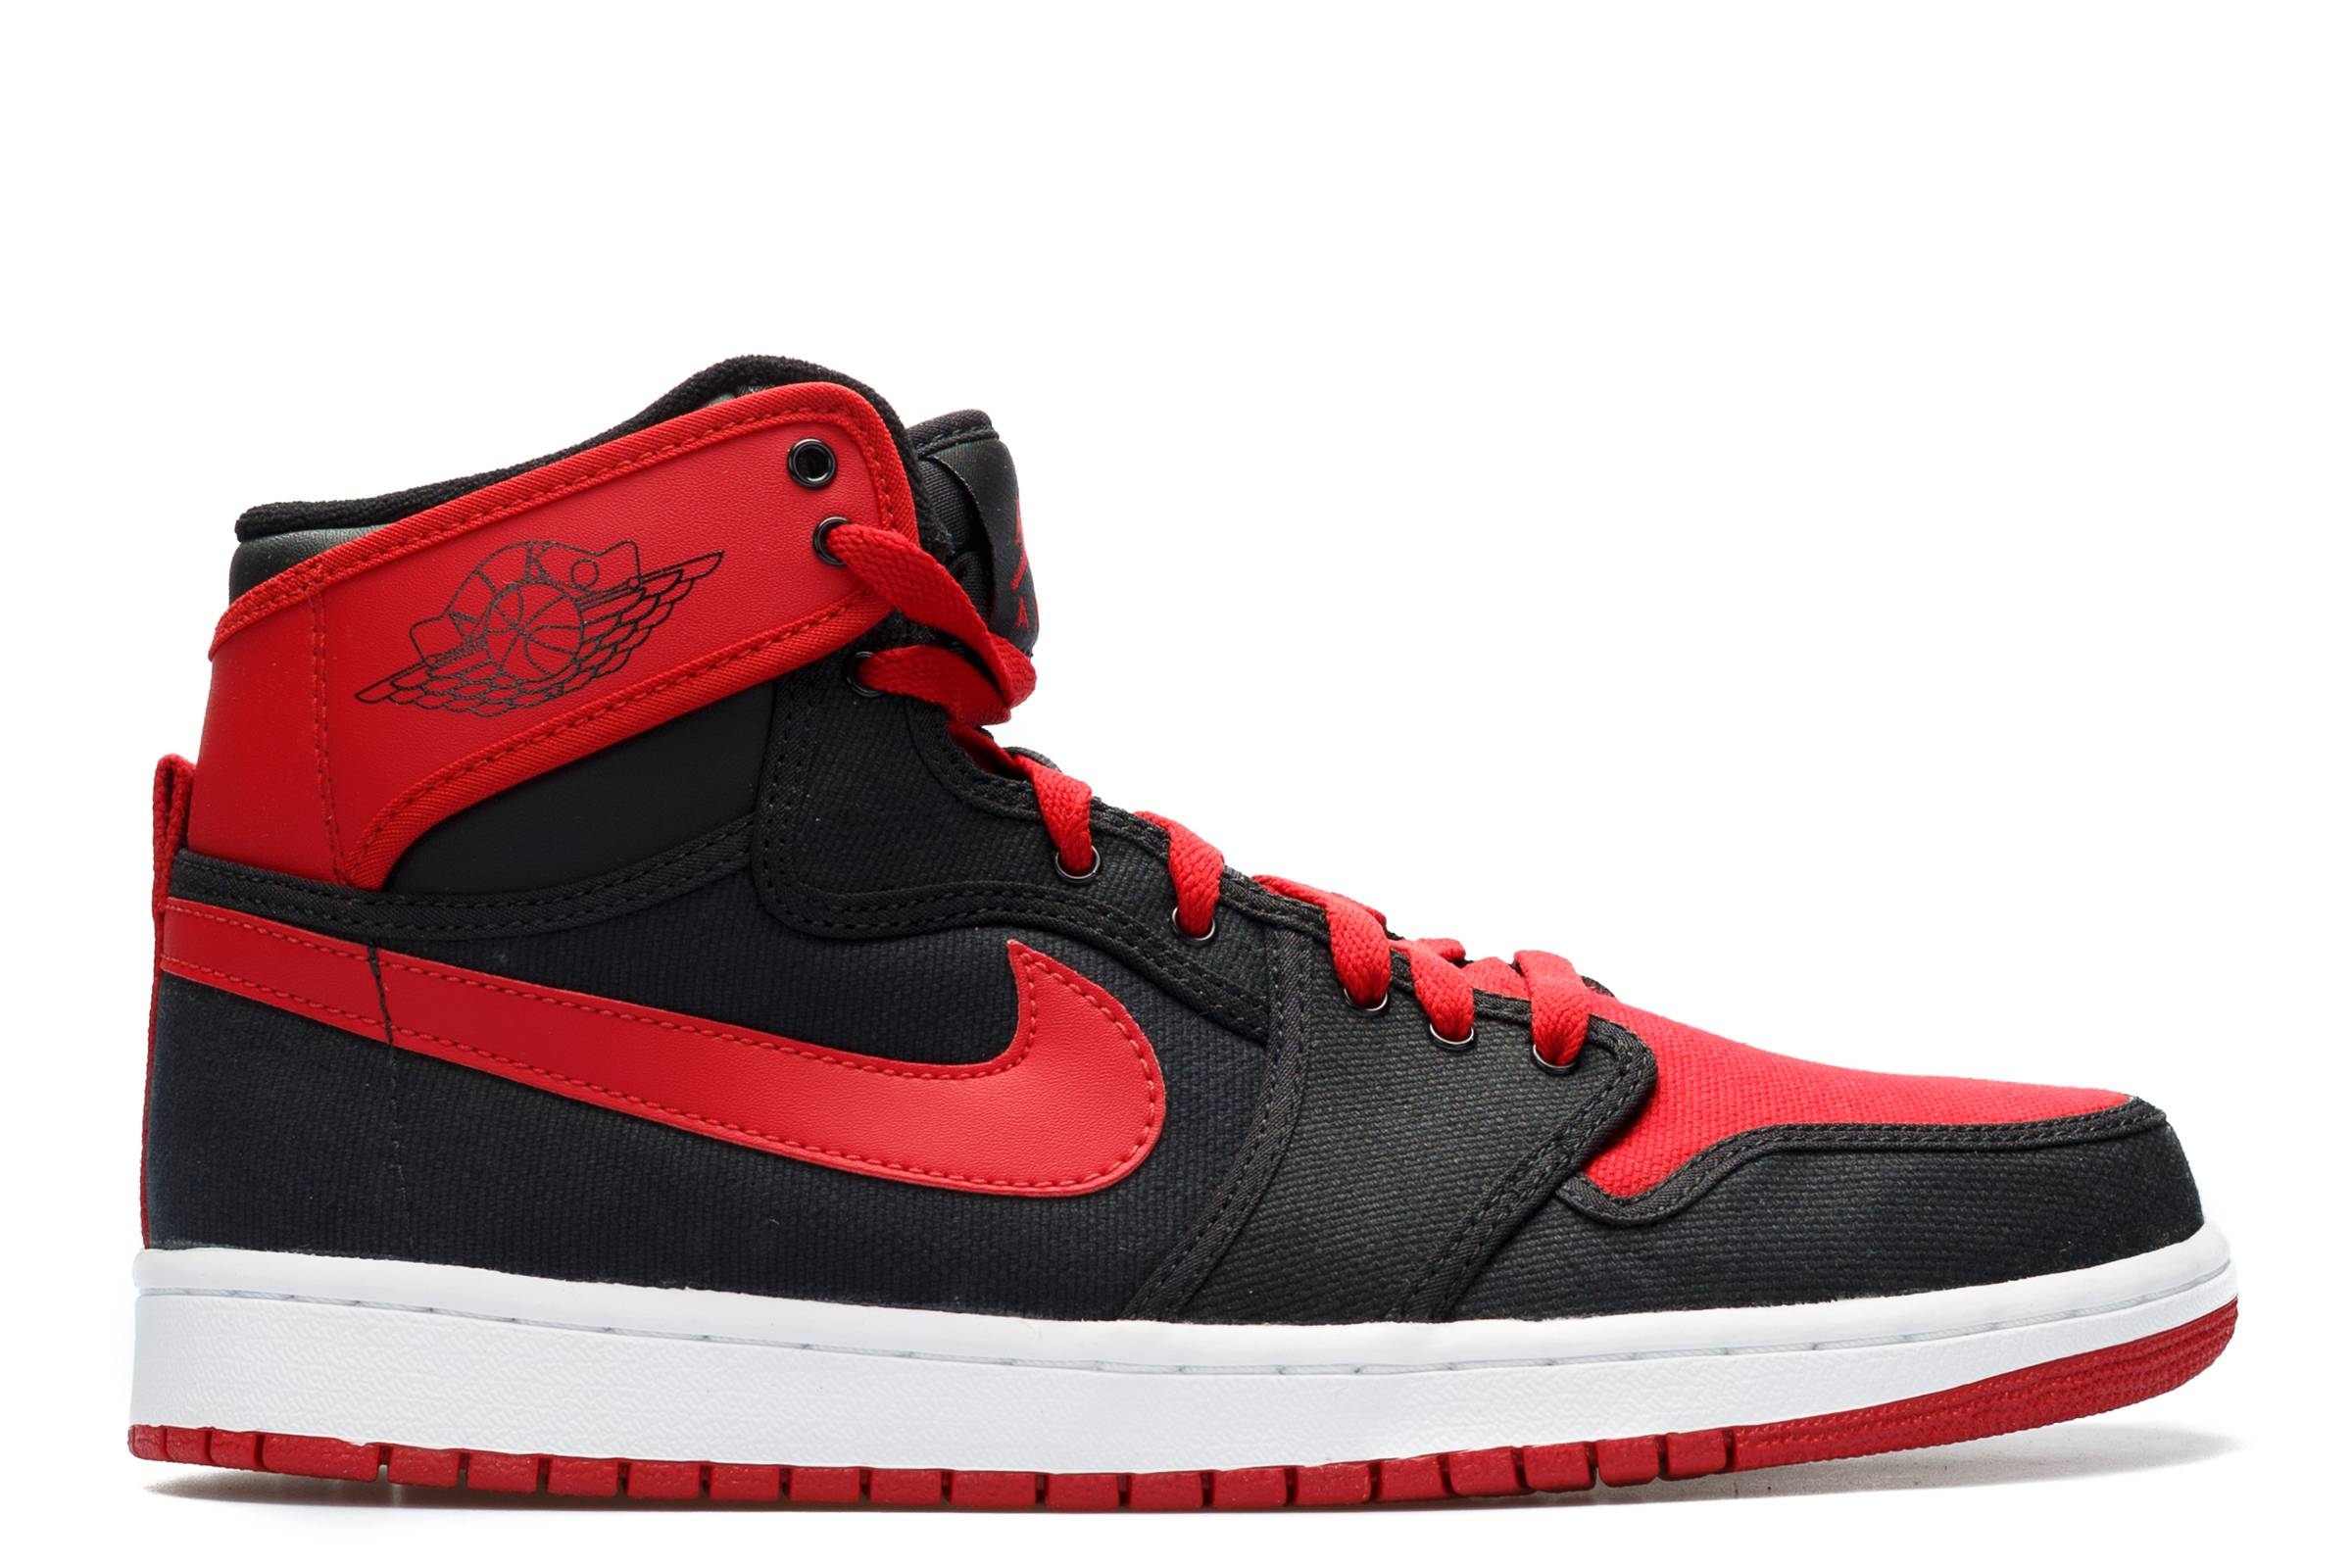 343491fa9744 The One That Started It All  A History of the Jordan 1 - Jordan 1 ...